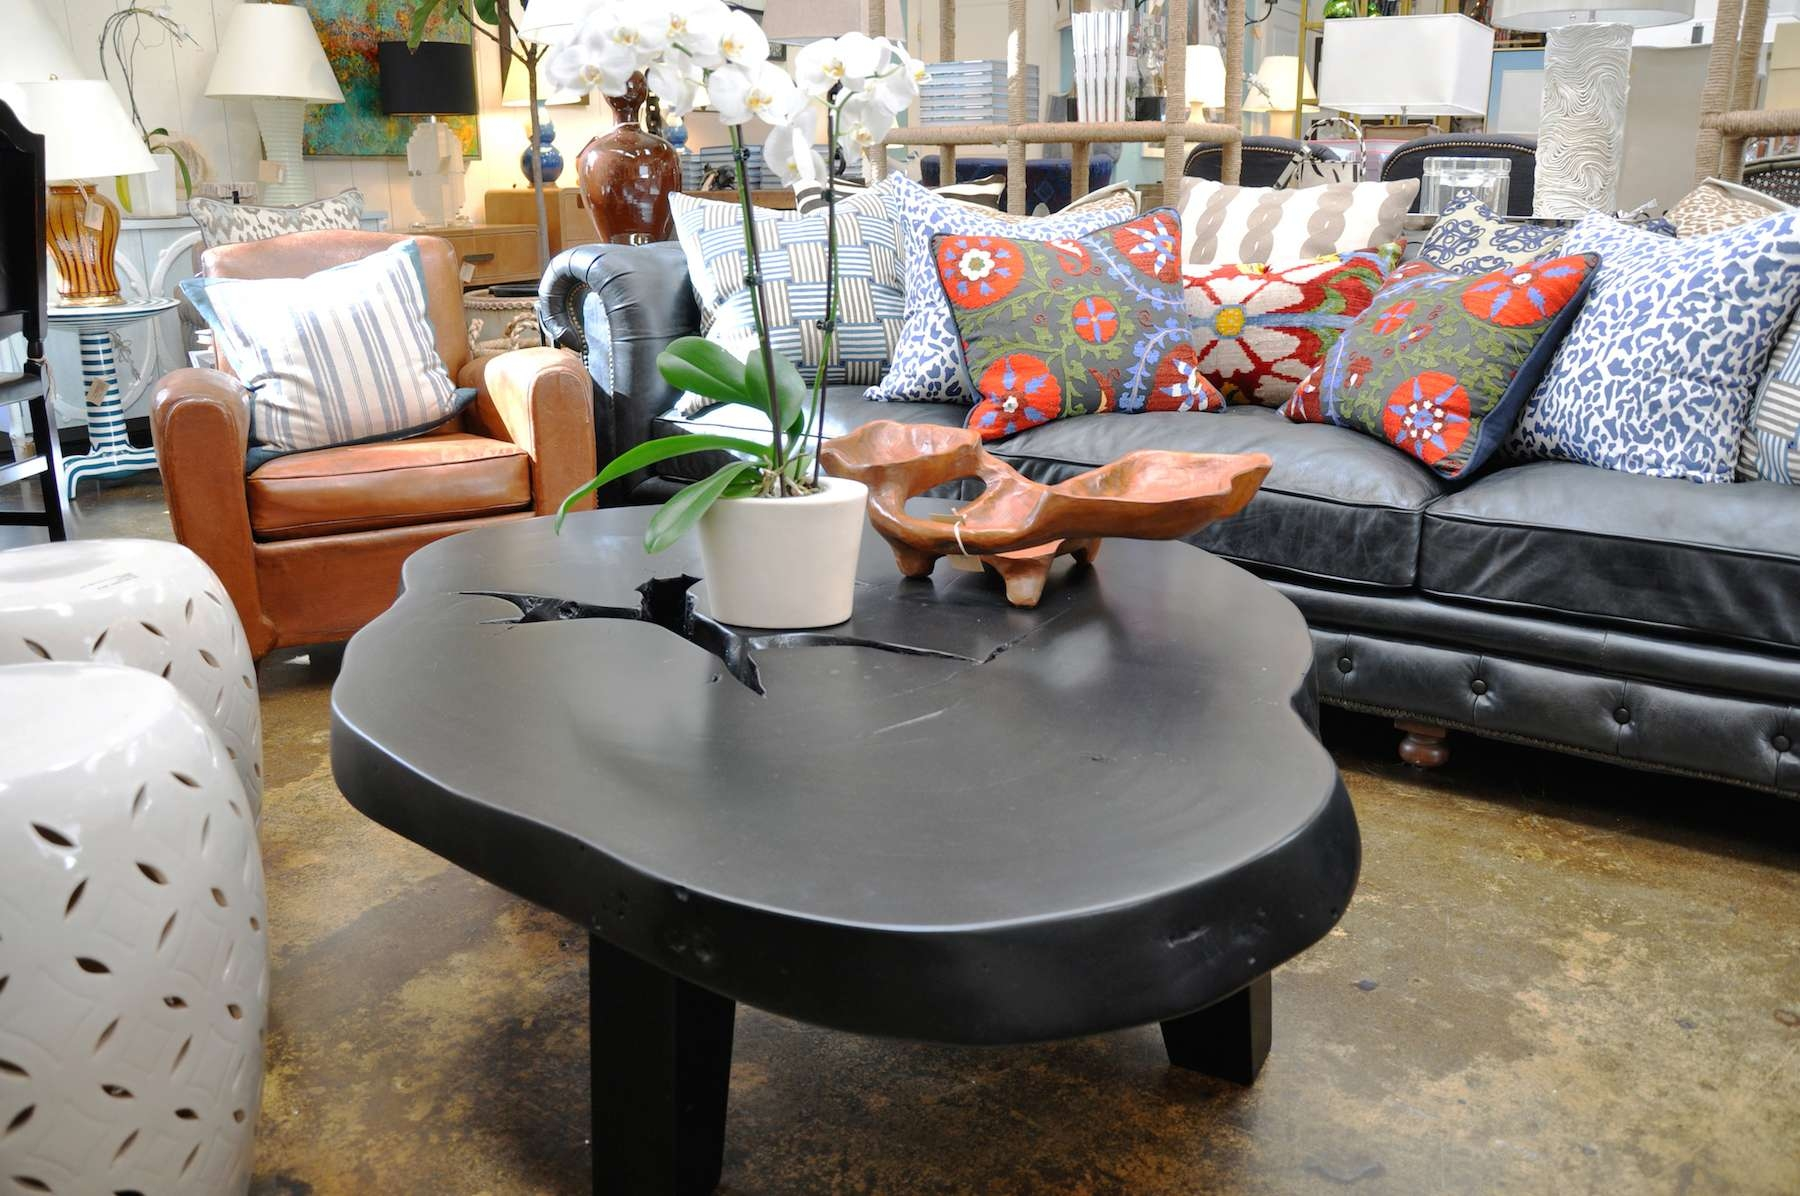 Free Form Albezia Wood Coffee Table – Mecox Gardens With Regard To Well Liked Free Form Coffee Tables (View 12 of 20)